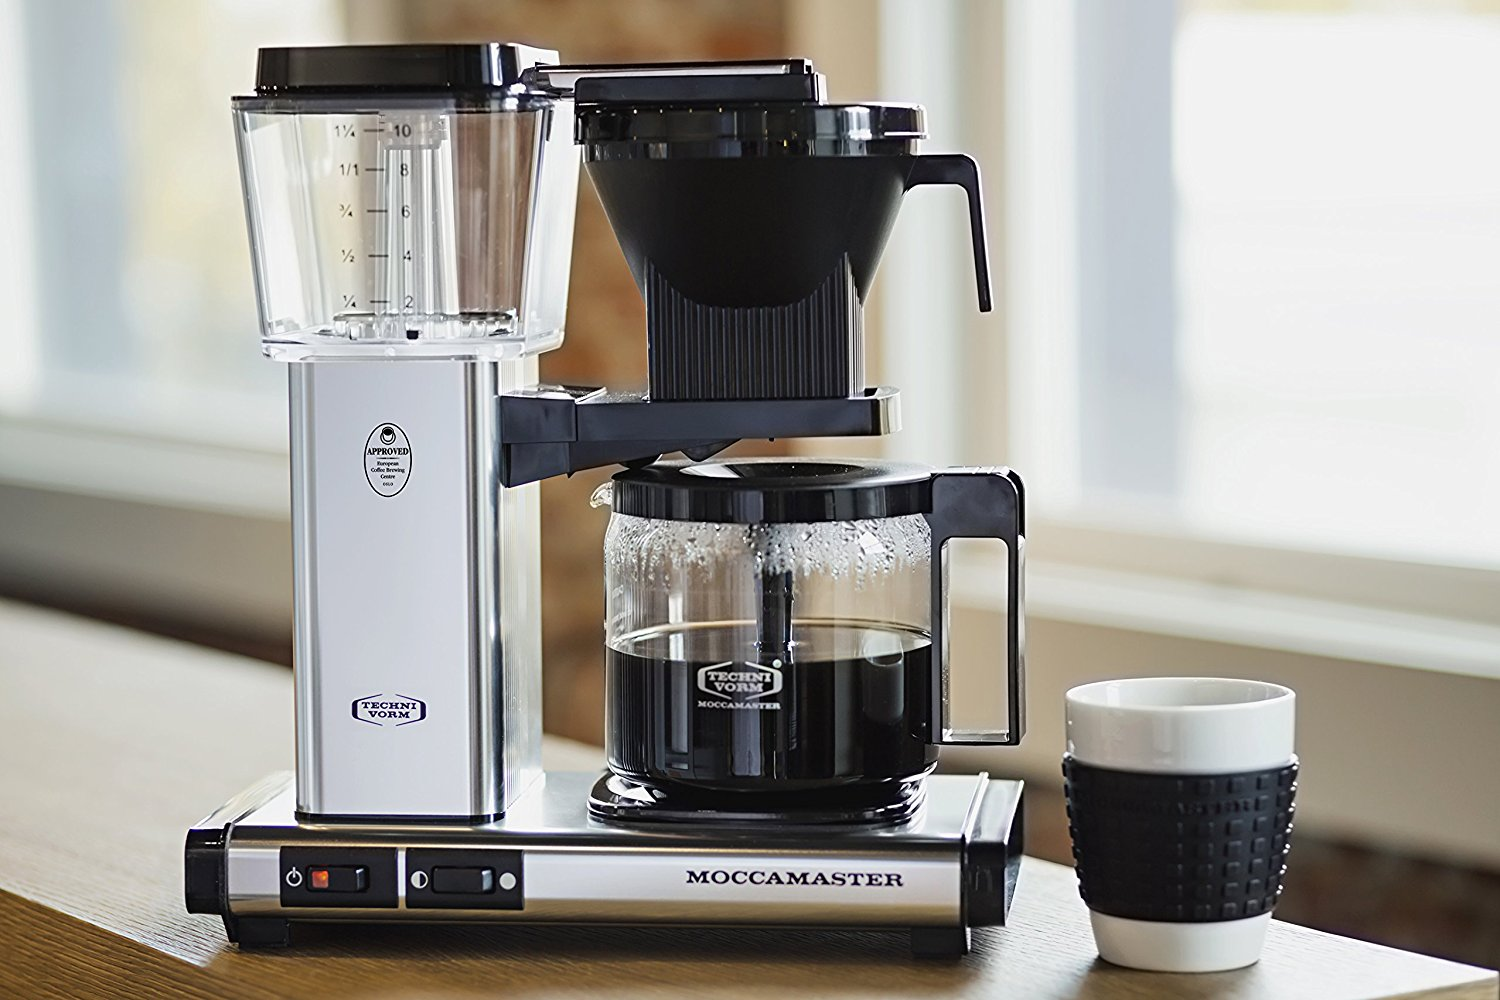 Technivorm Moccamaster: Best Drip Coffee Maker for Coffee Snobs